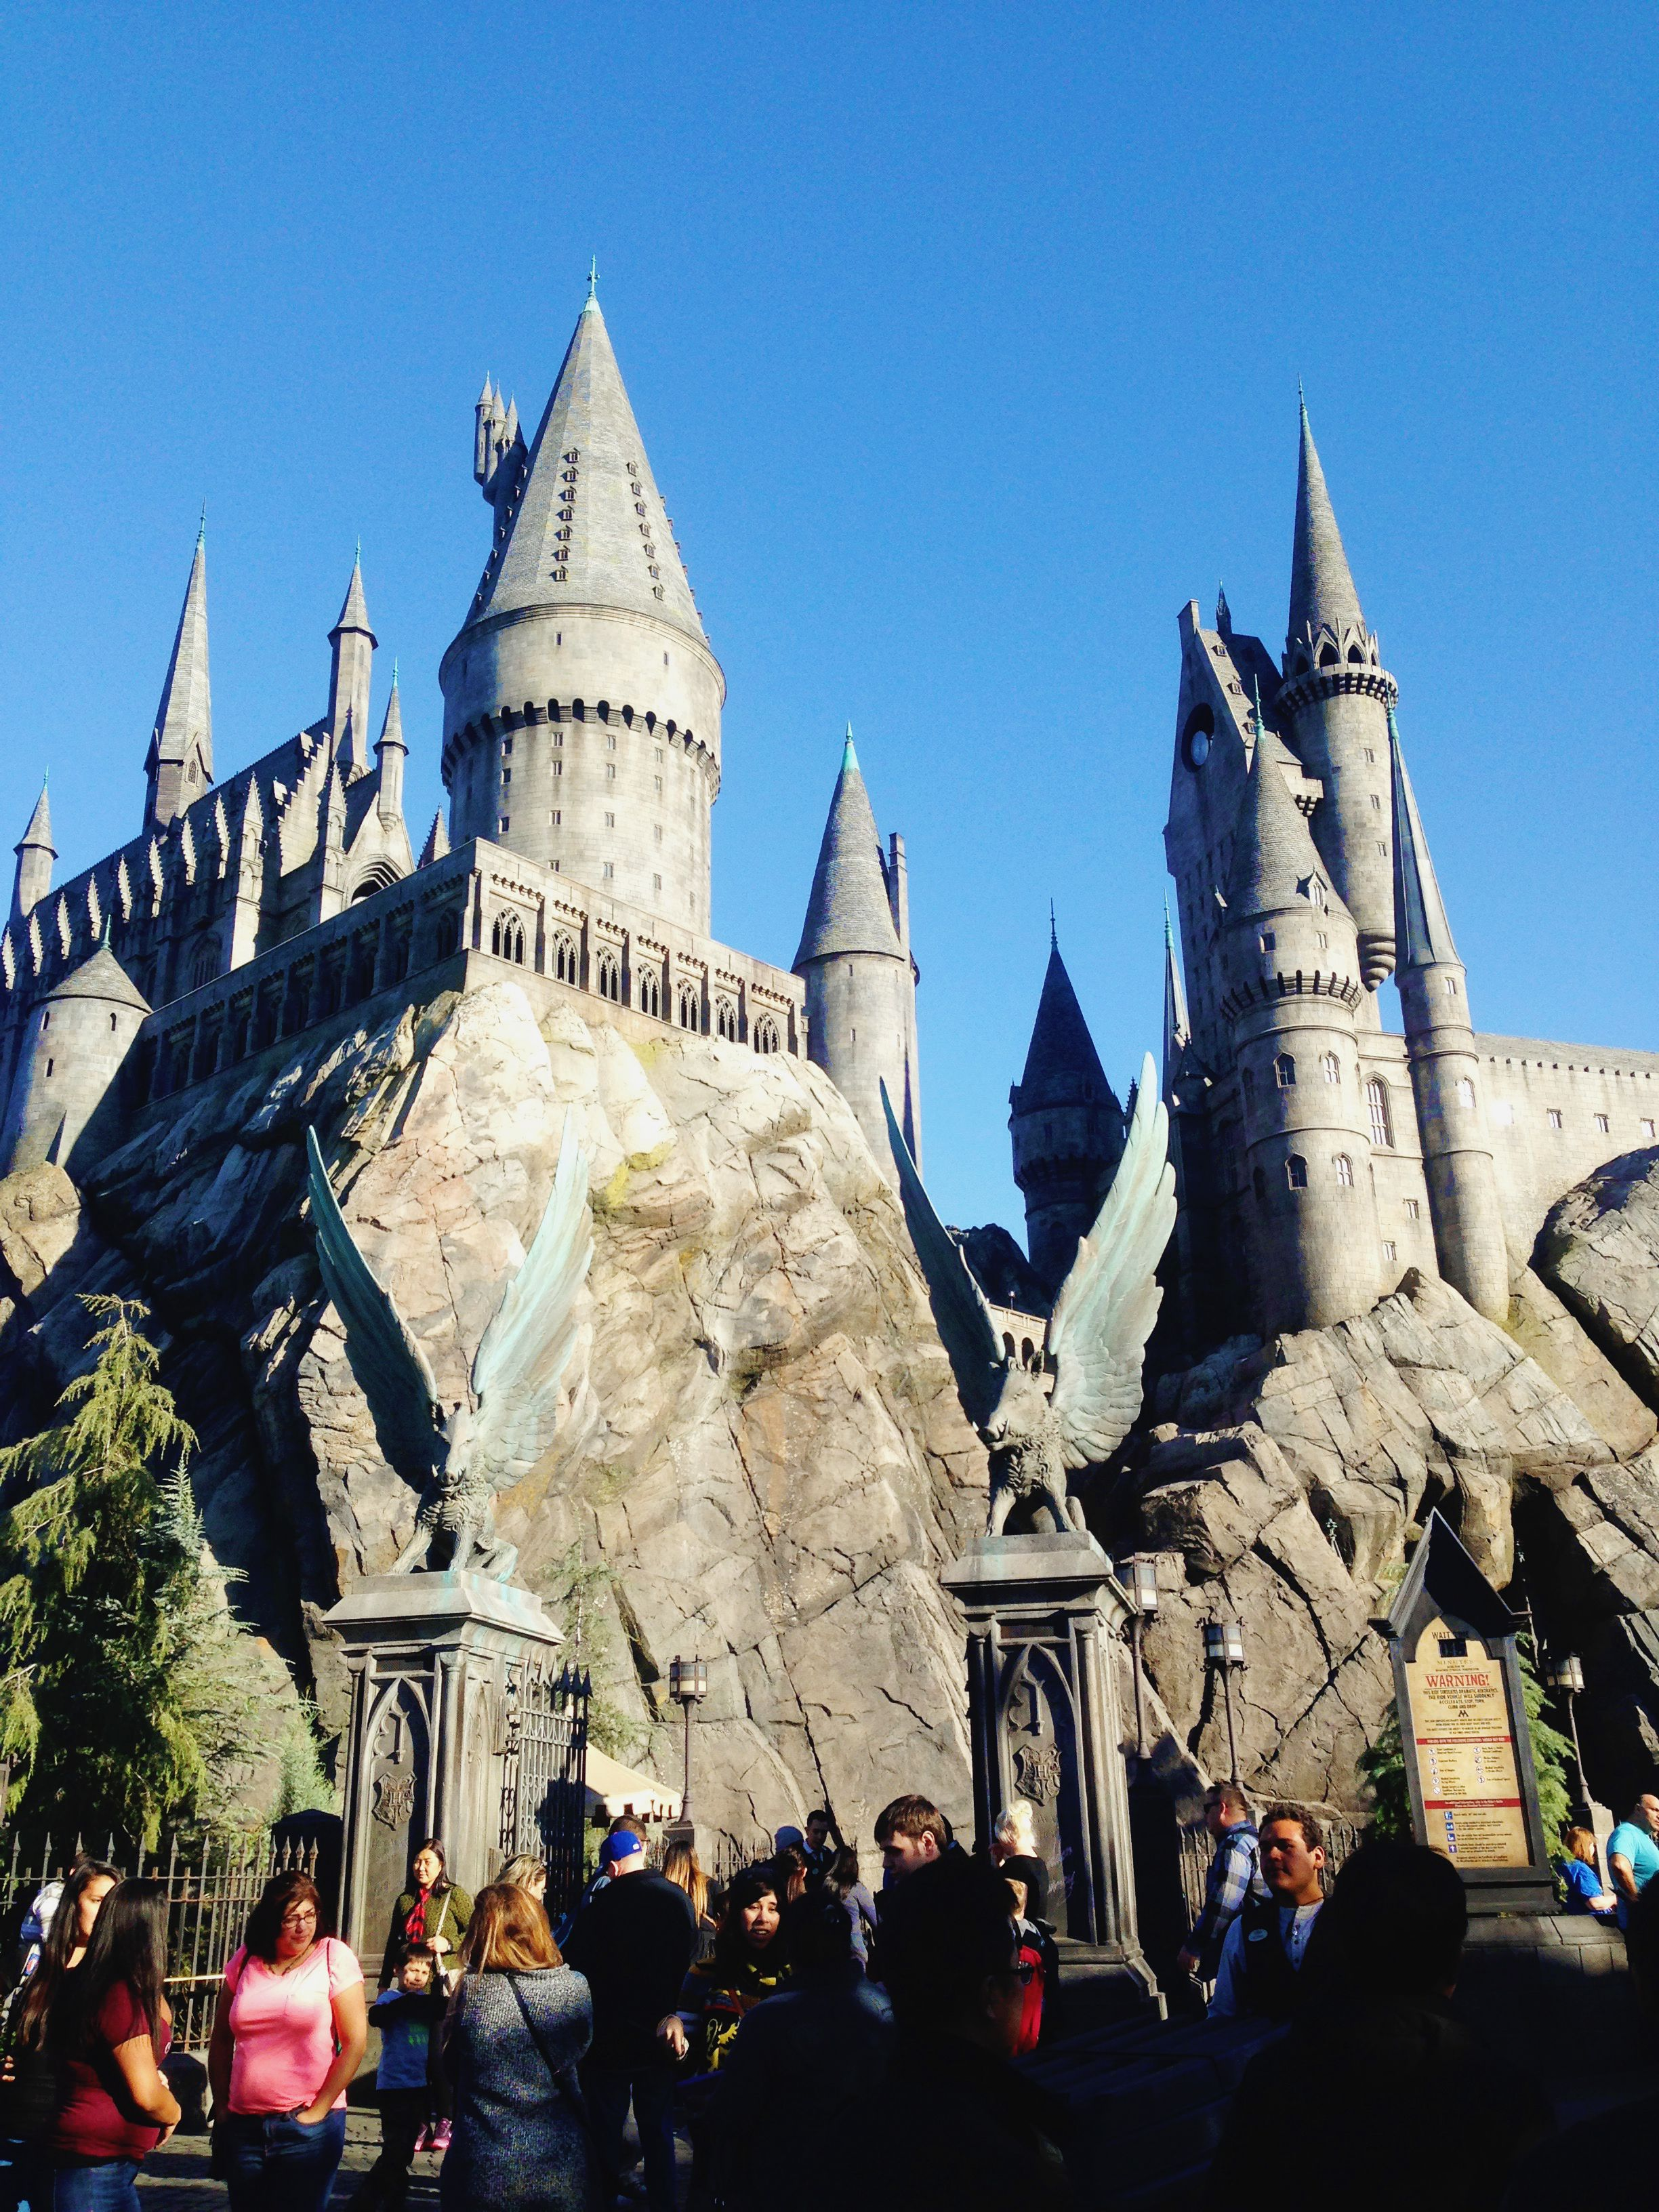 Cosplaying At The Wizarding World Of Harry Potter Wizarding World Wizarding World Of Harry Potter Harry Potter Travel Bucket List